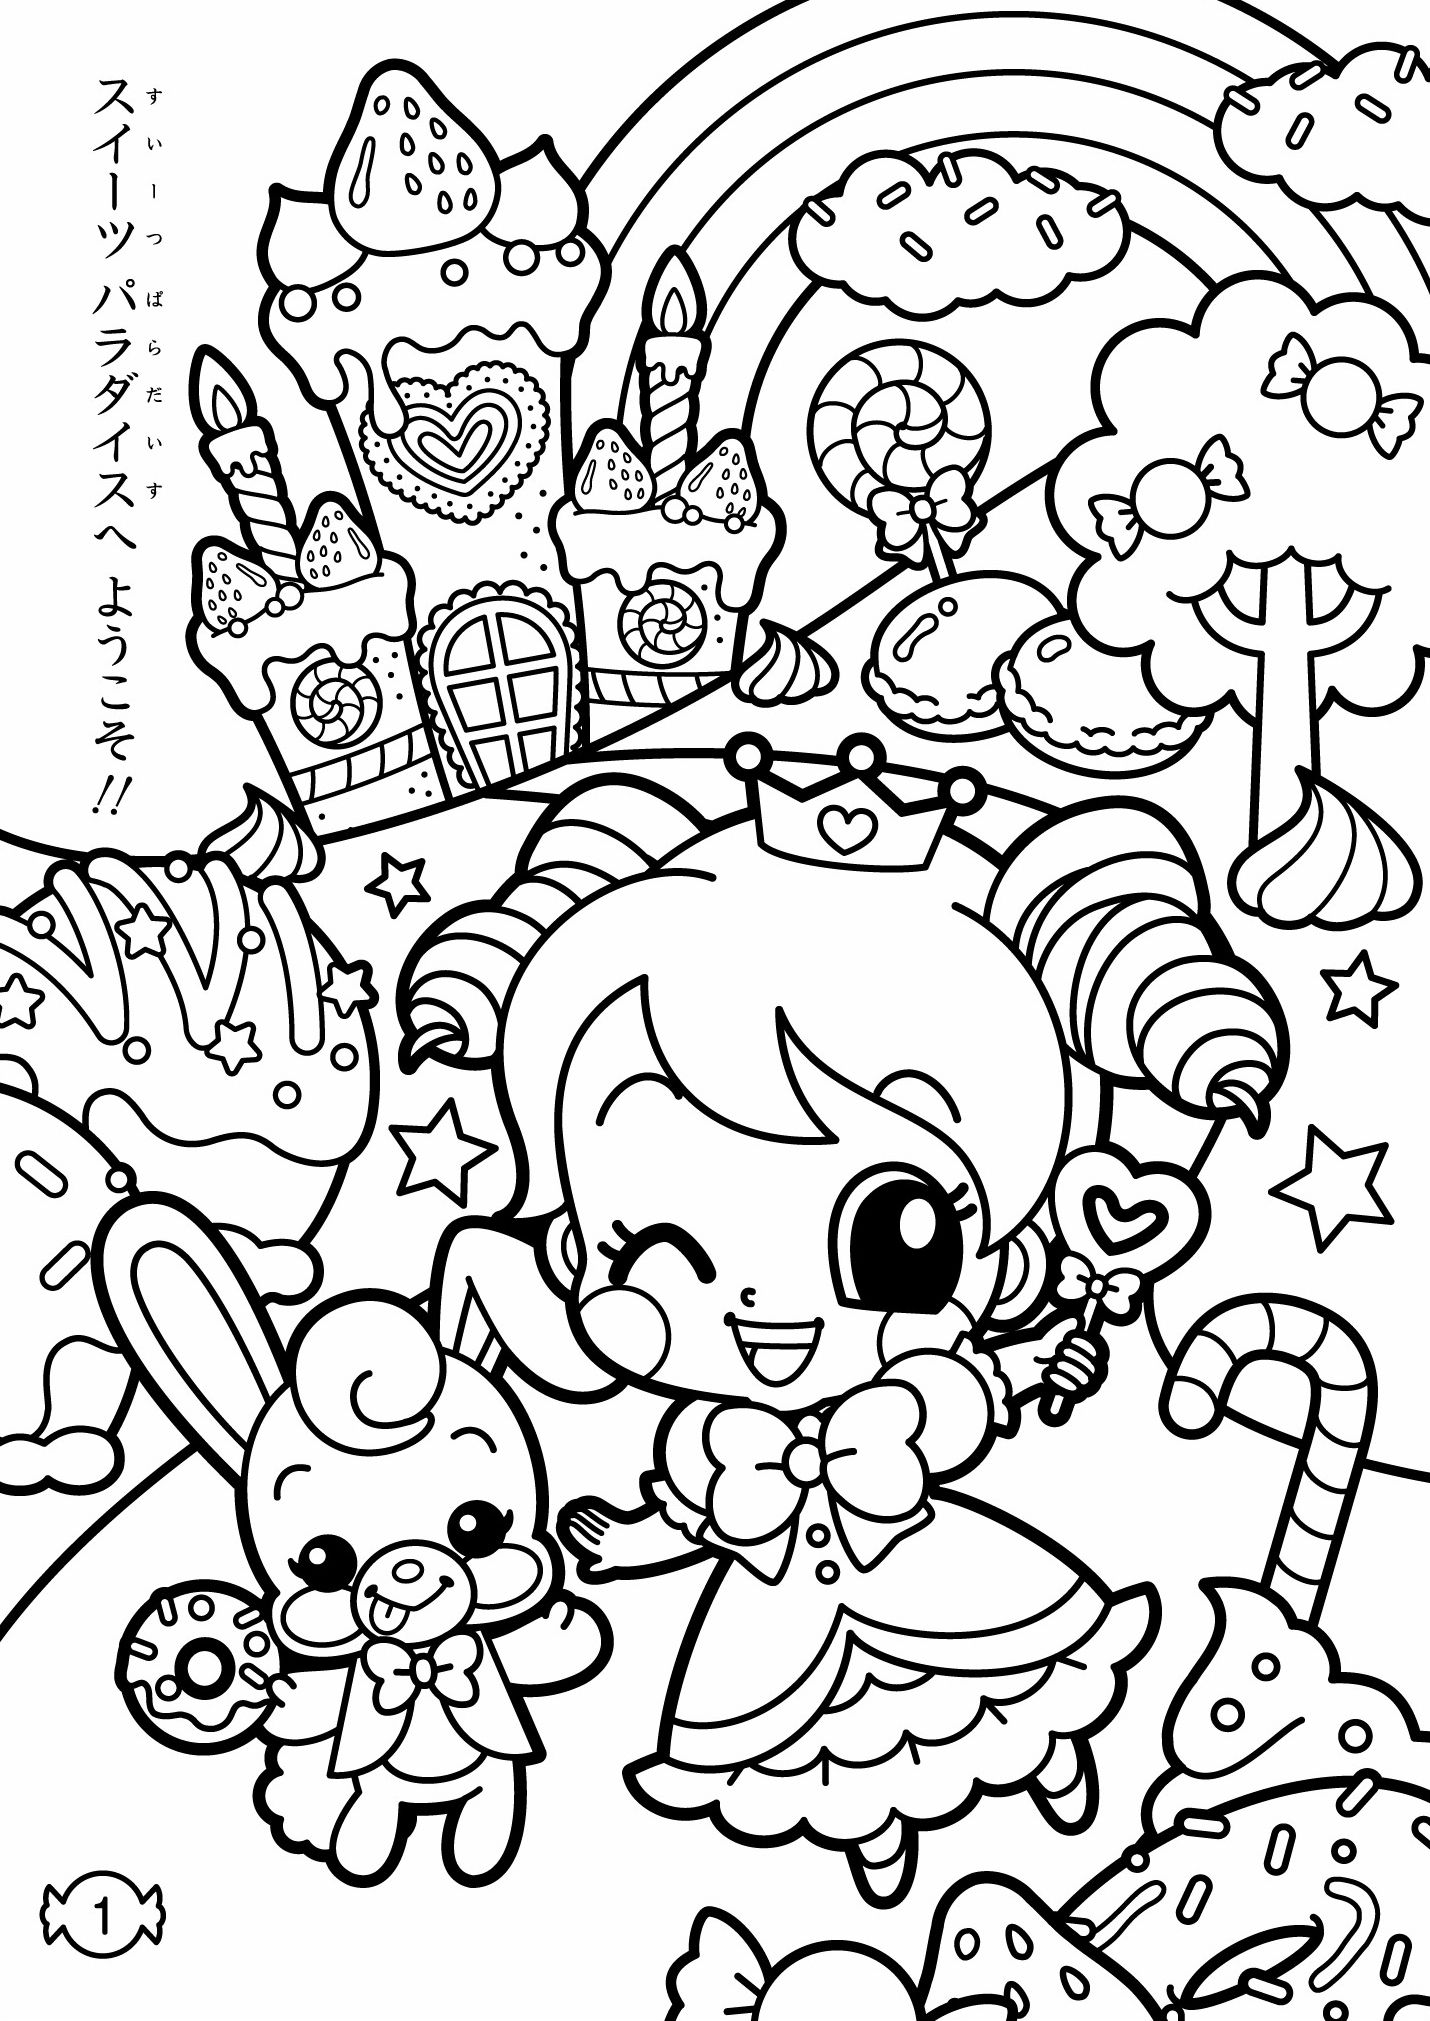 cute kawaii princess coloring pages fanart free chibi colouring pages yampuff39s stuff kawaii coloring cute princess pages